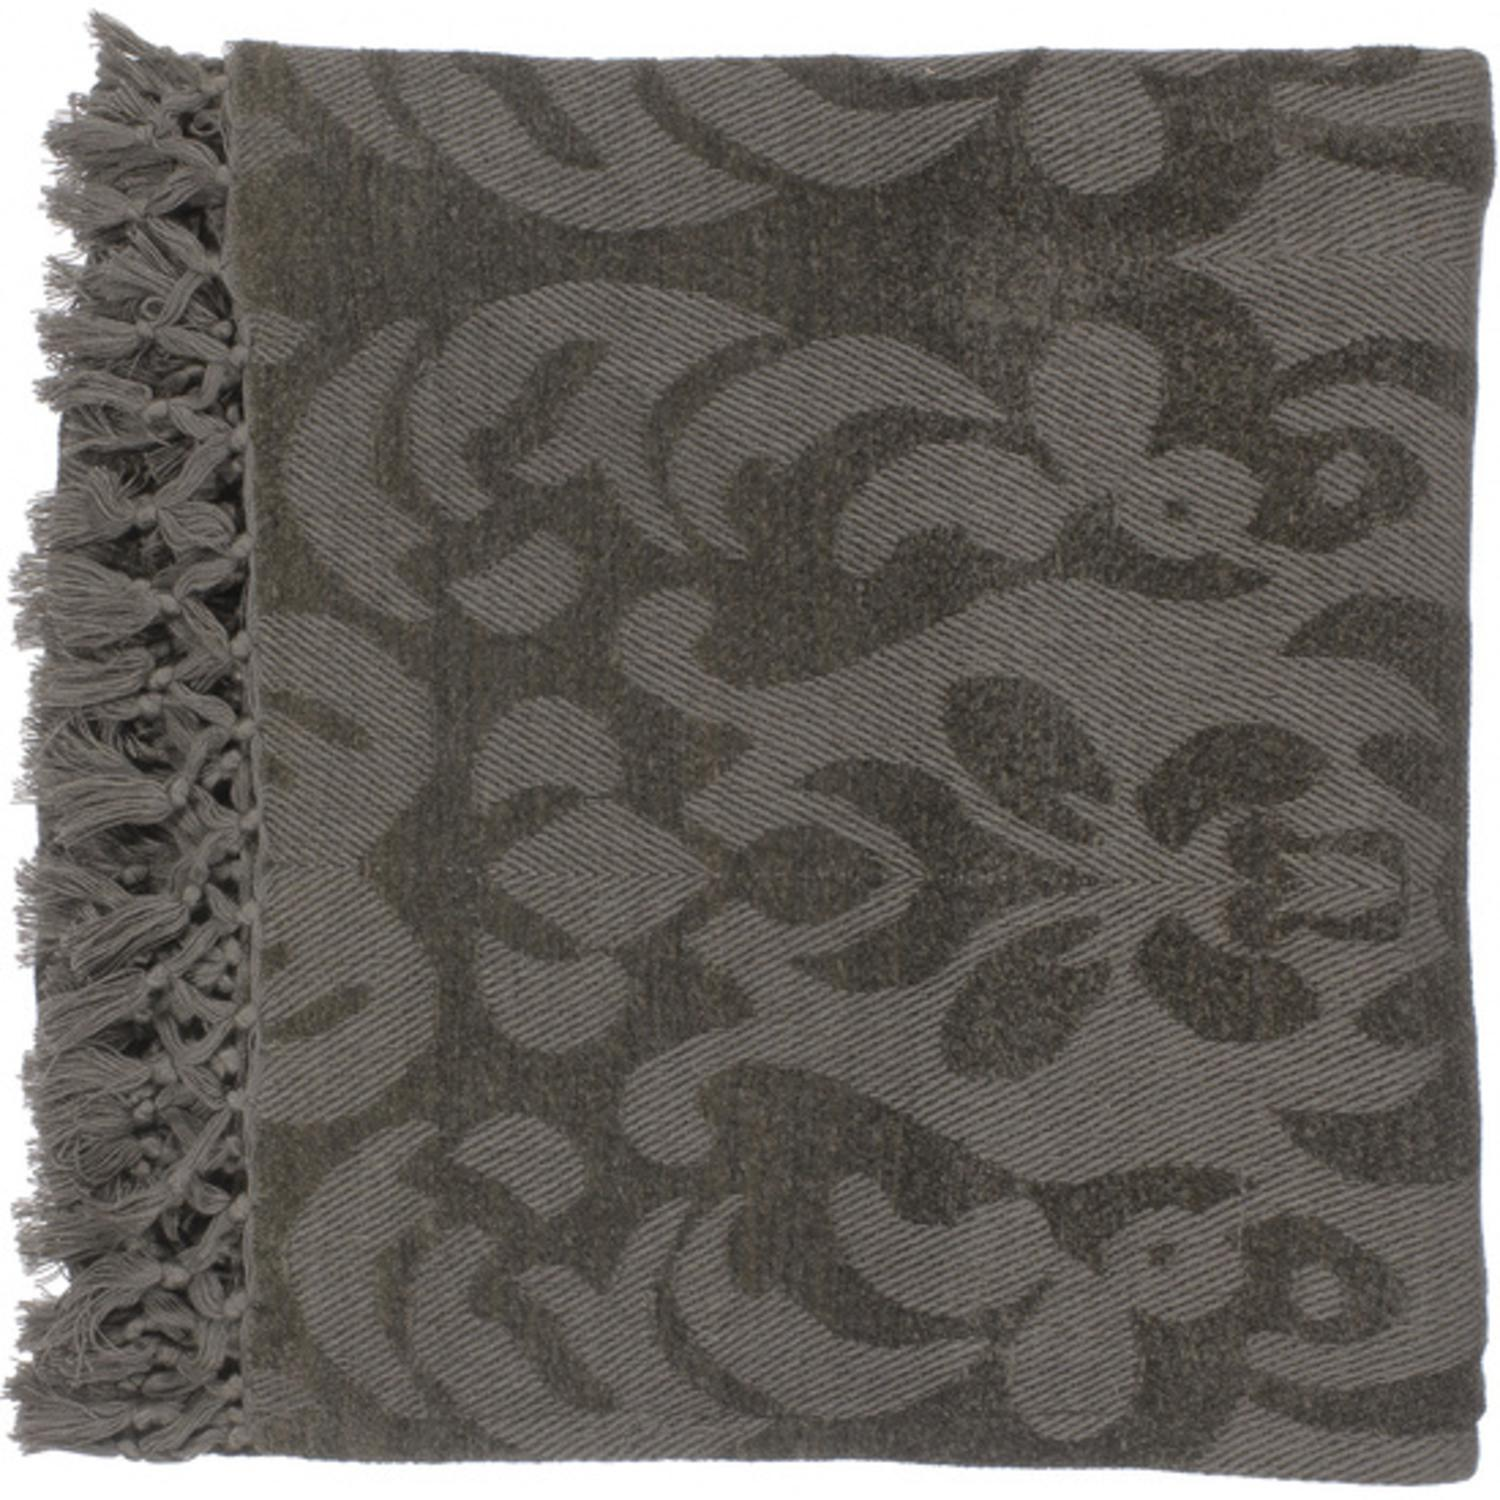 "50"" x 70"" Floral Scroll Dark Plum Gray Viscose Throw Blanket"